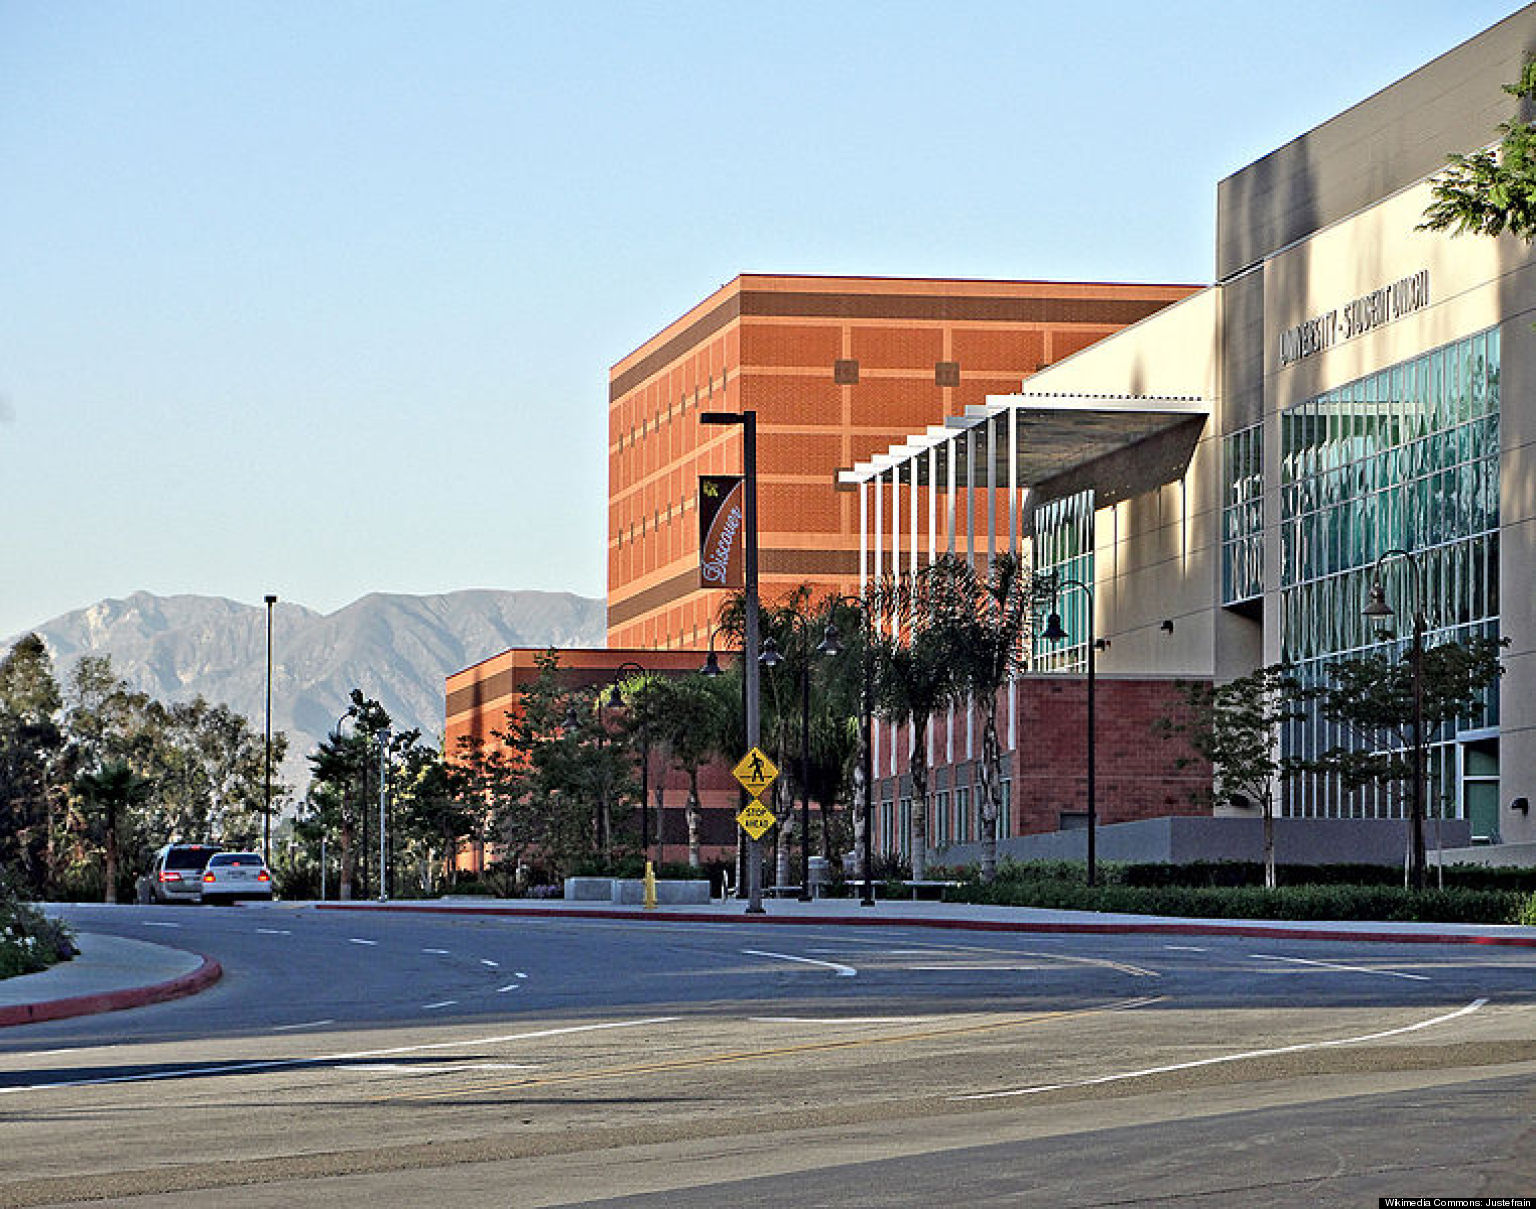 Cal State LA Bomb Threat Prompts Campus Evacuation